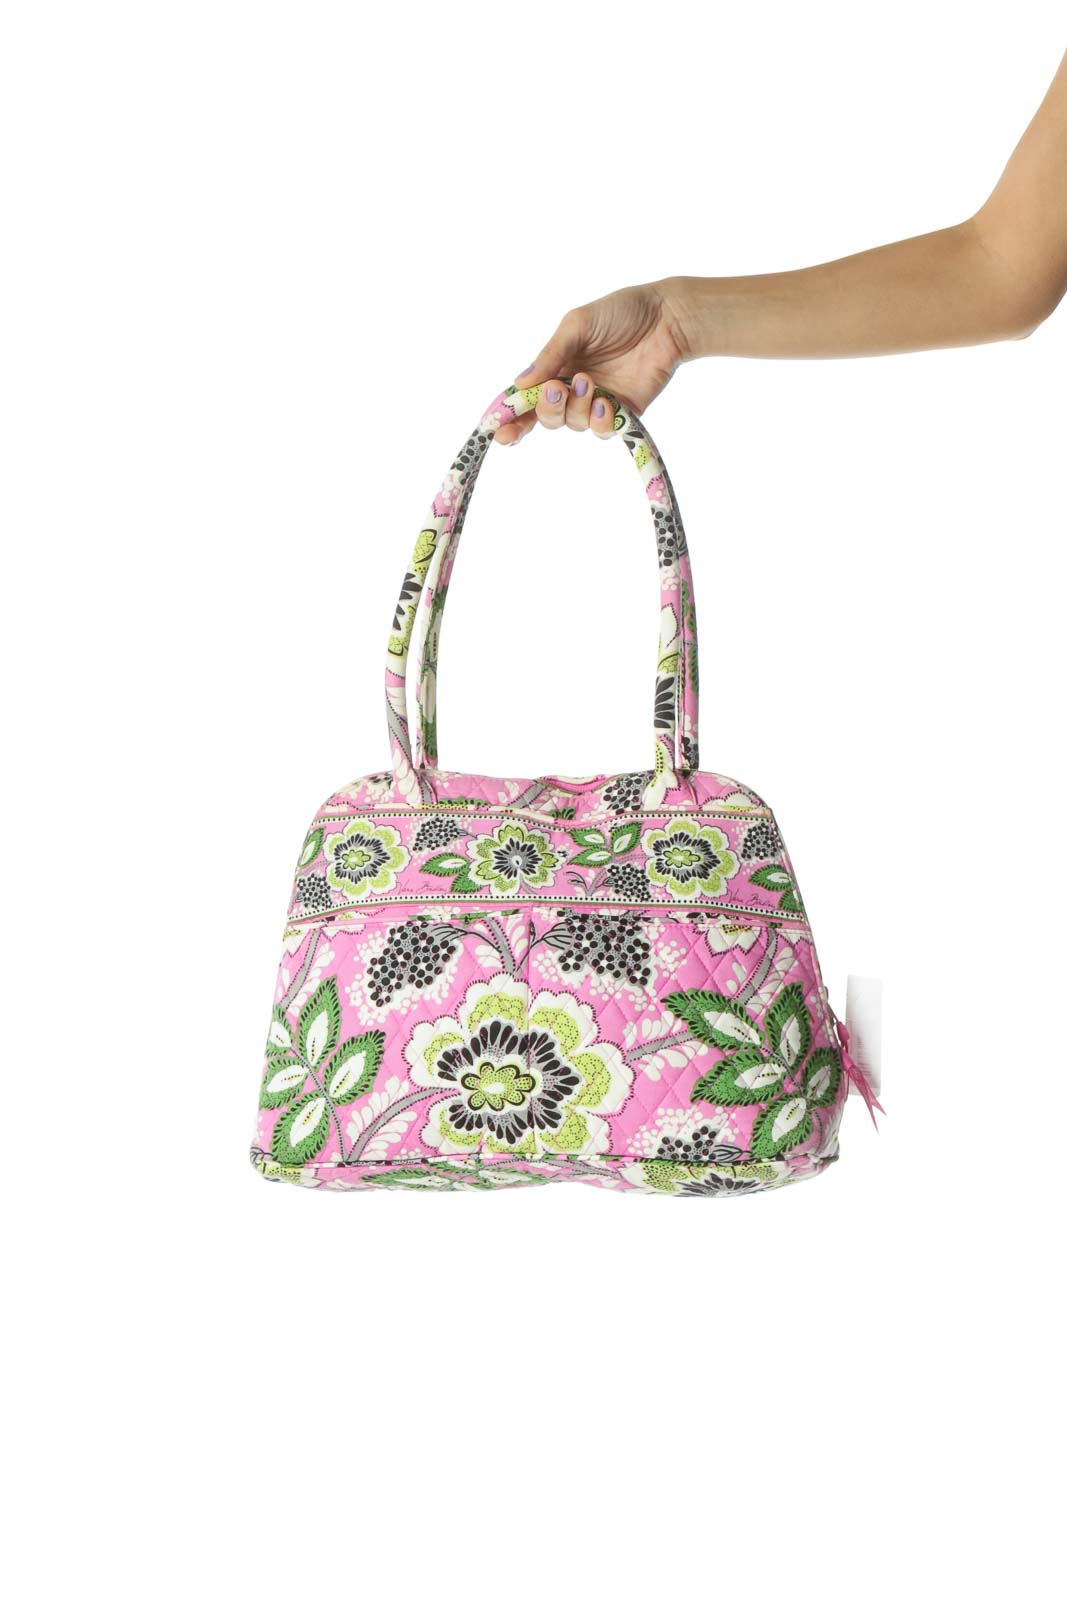 Green and Pink Floral Print Quilted Bag Front